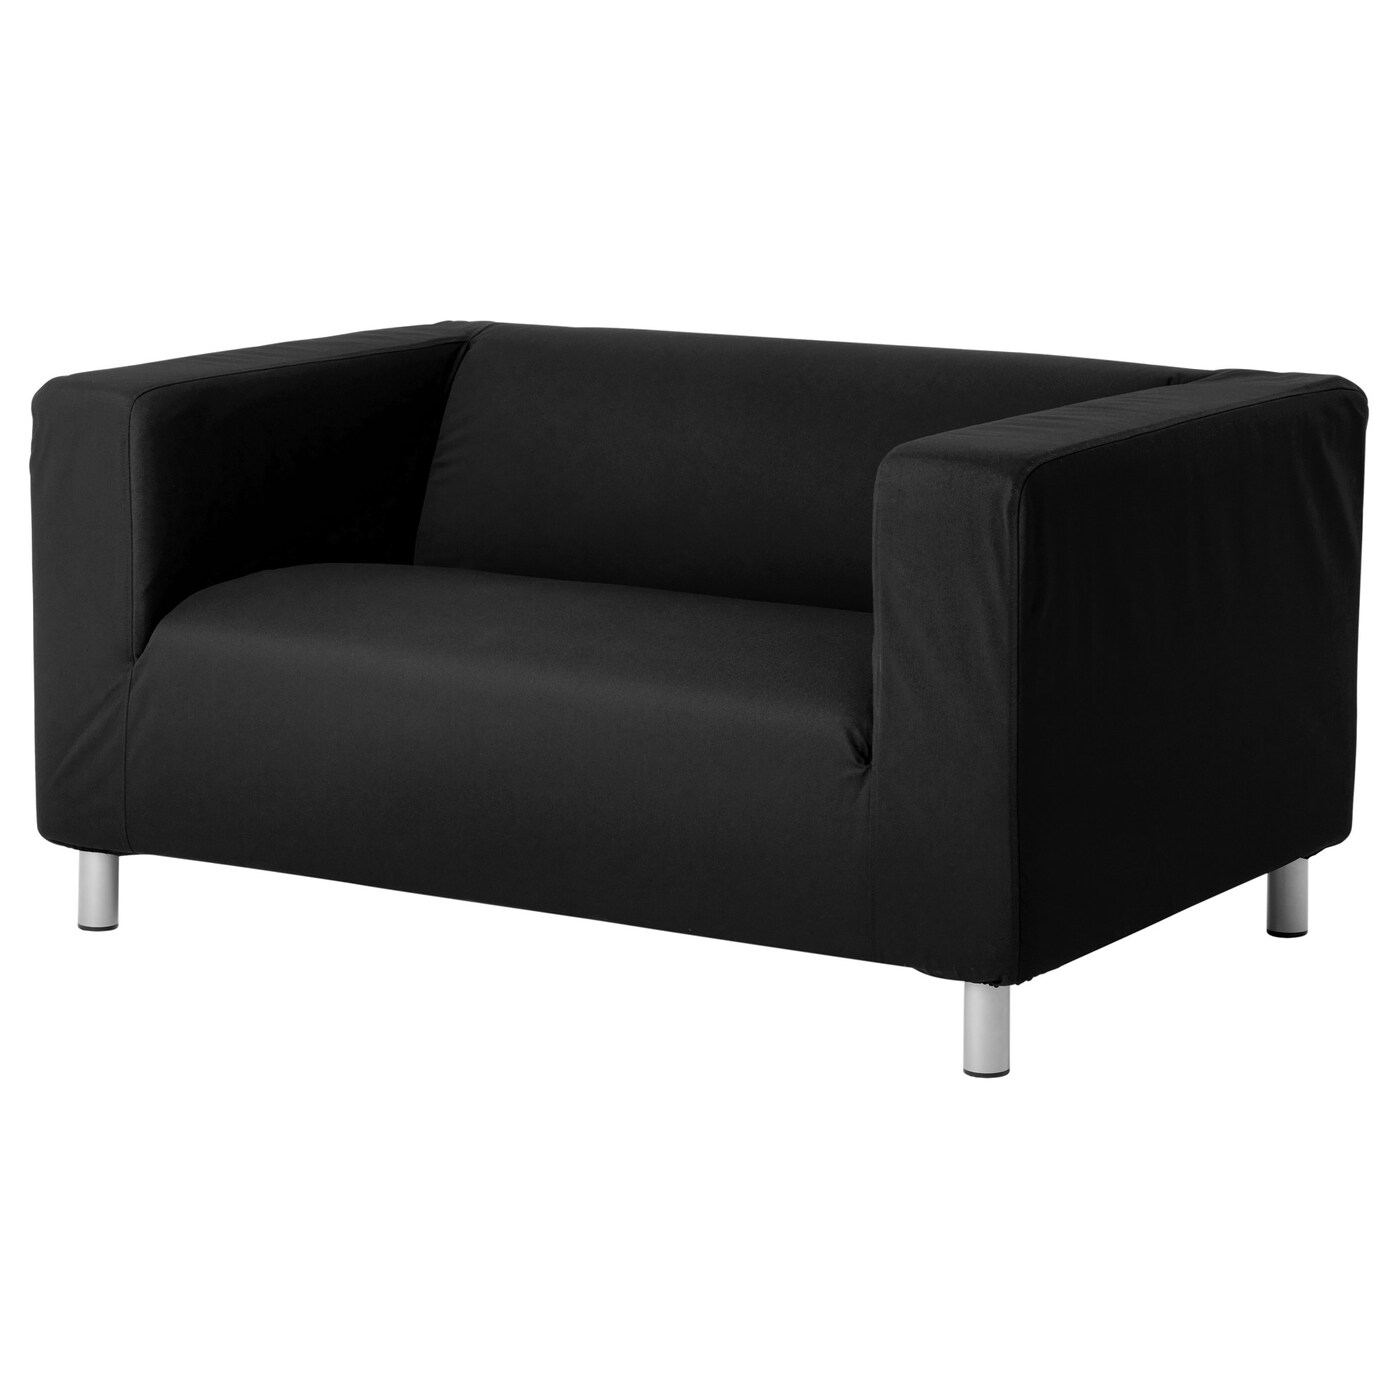 Klippan two seat sofa gran n black ikea for Black fabric couches